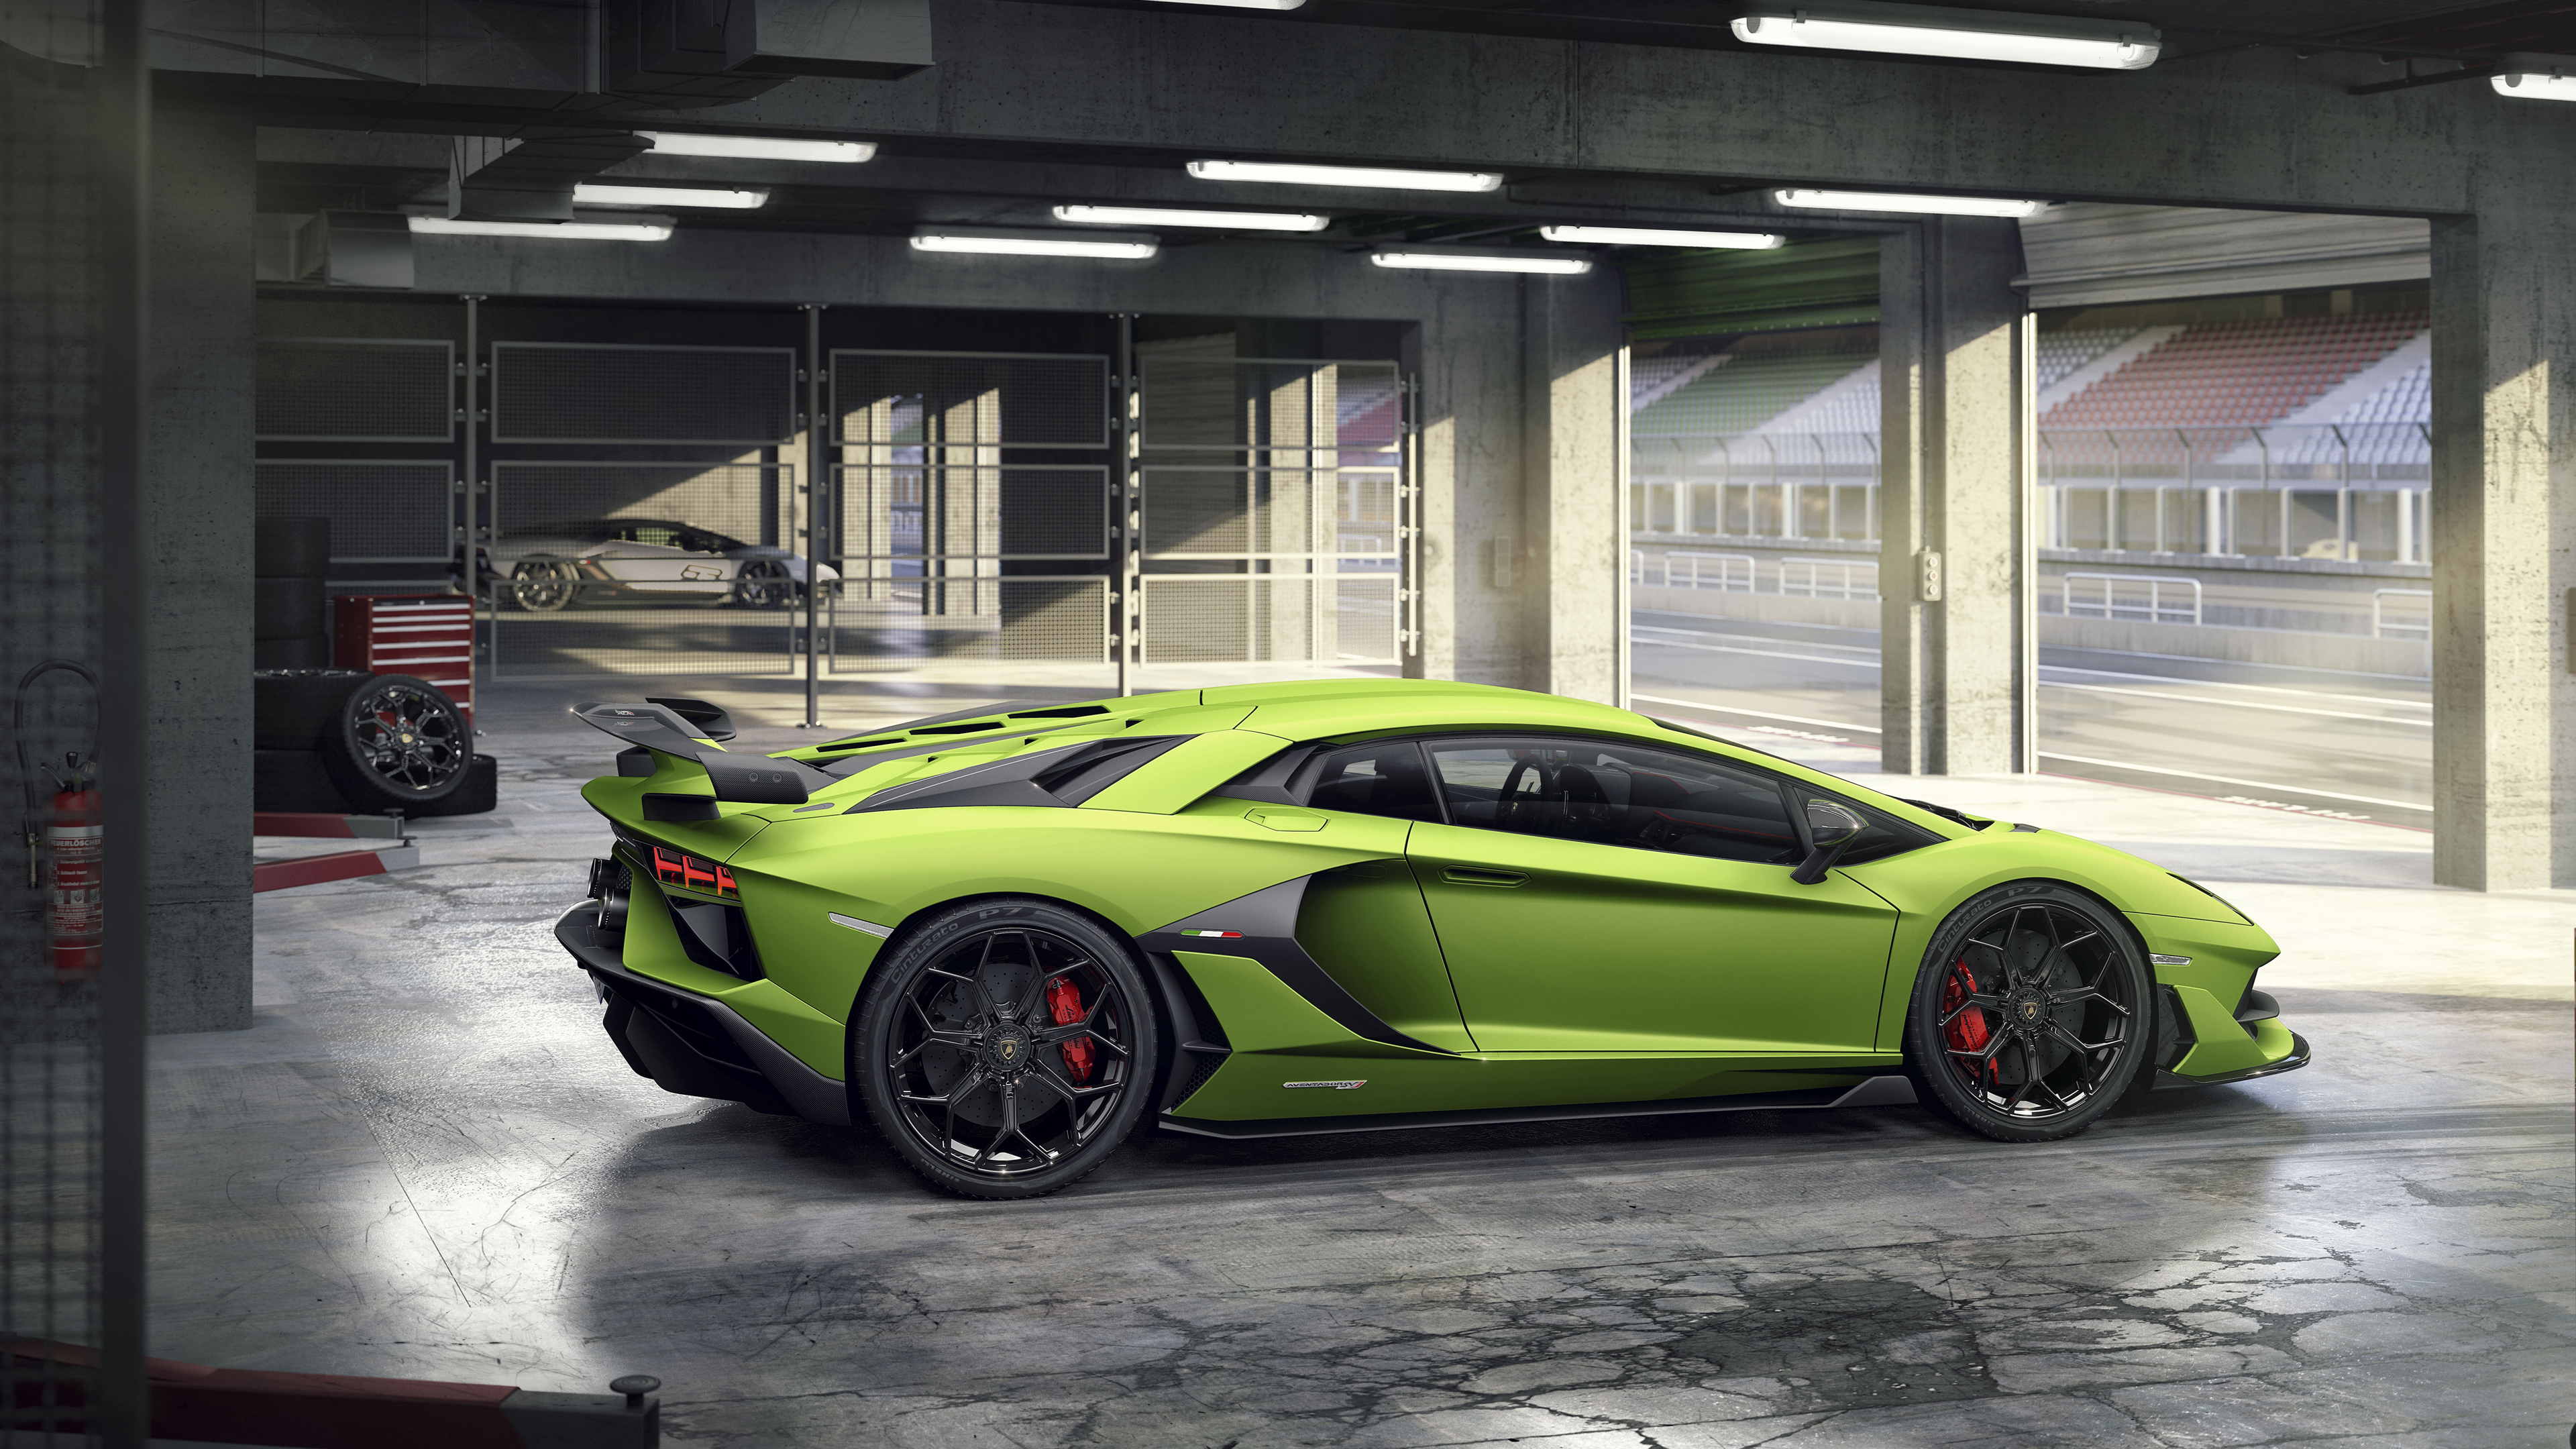 2019 Lamborghini Aventador Svj 4k 4 Wallpaper Hd Car Wallpapers